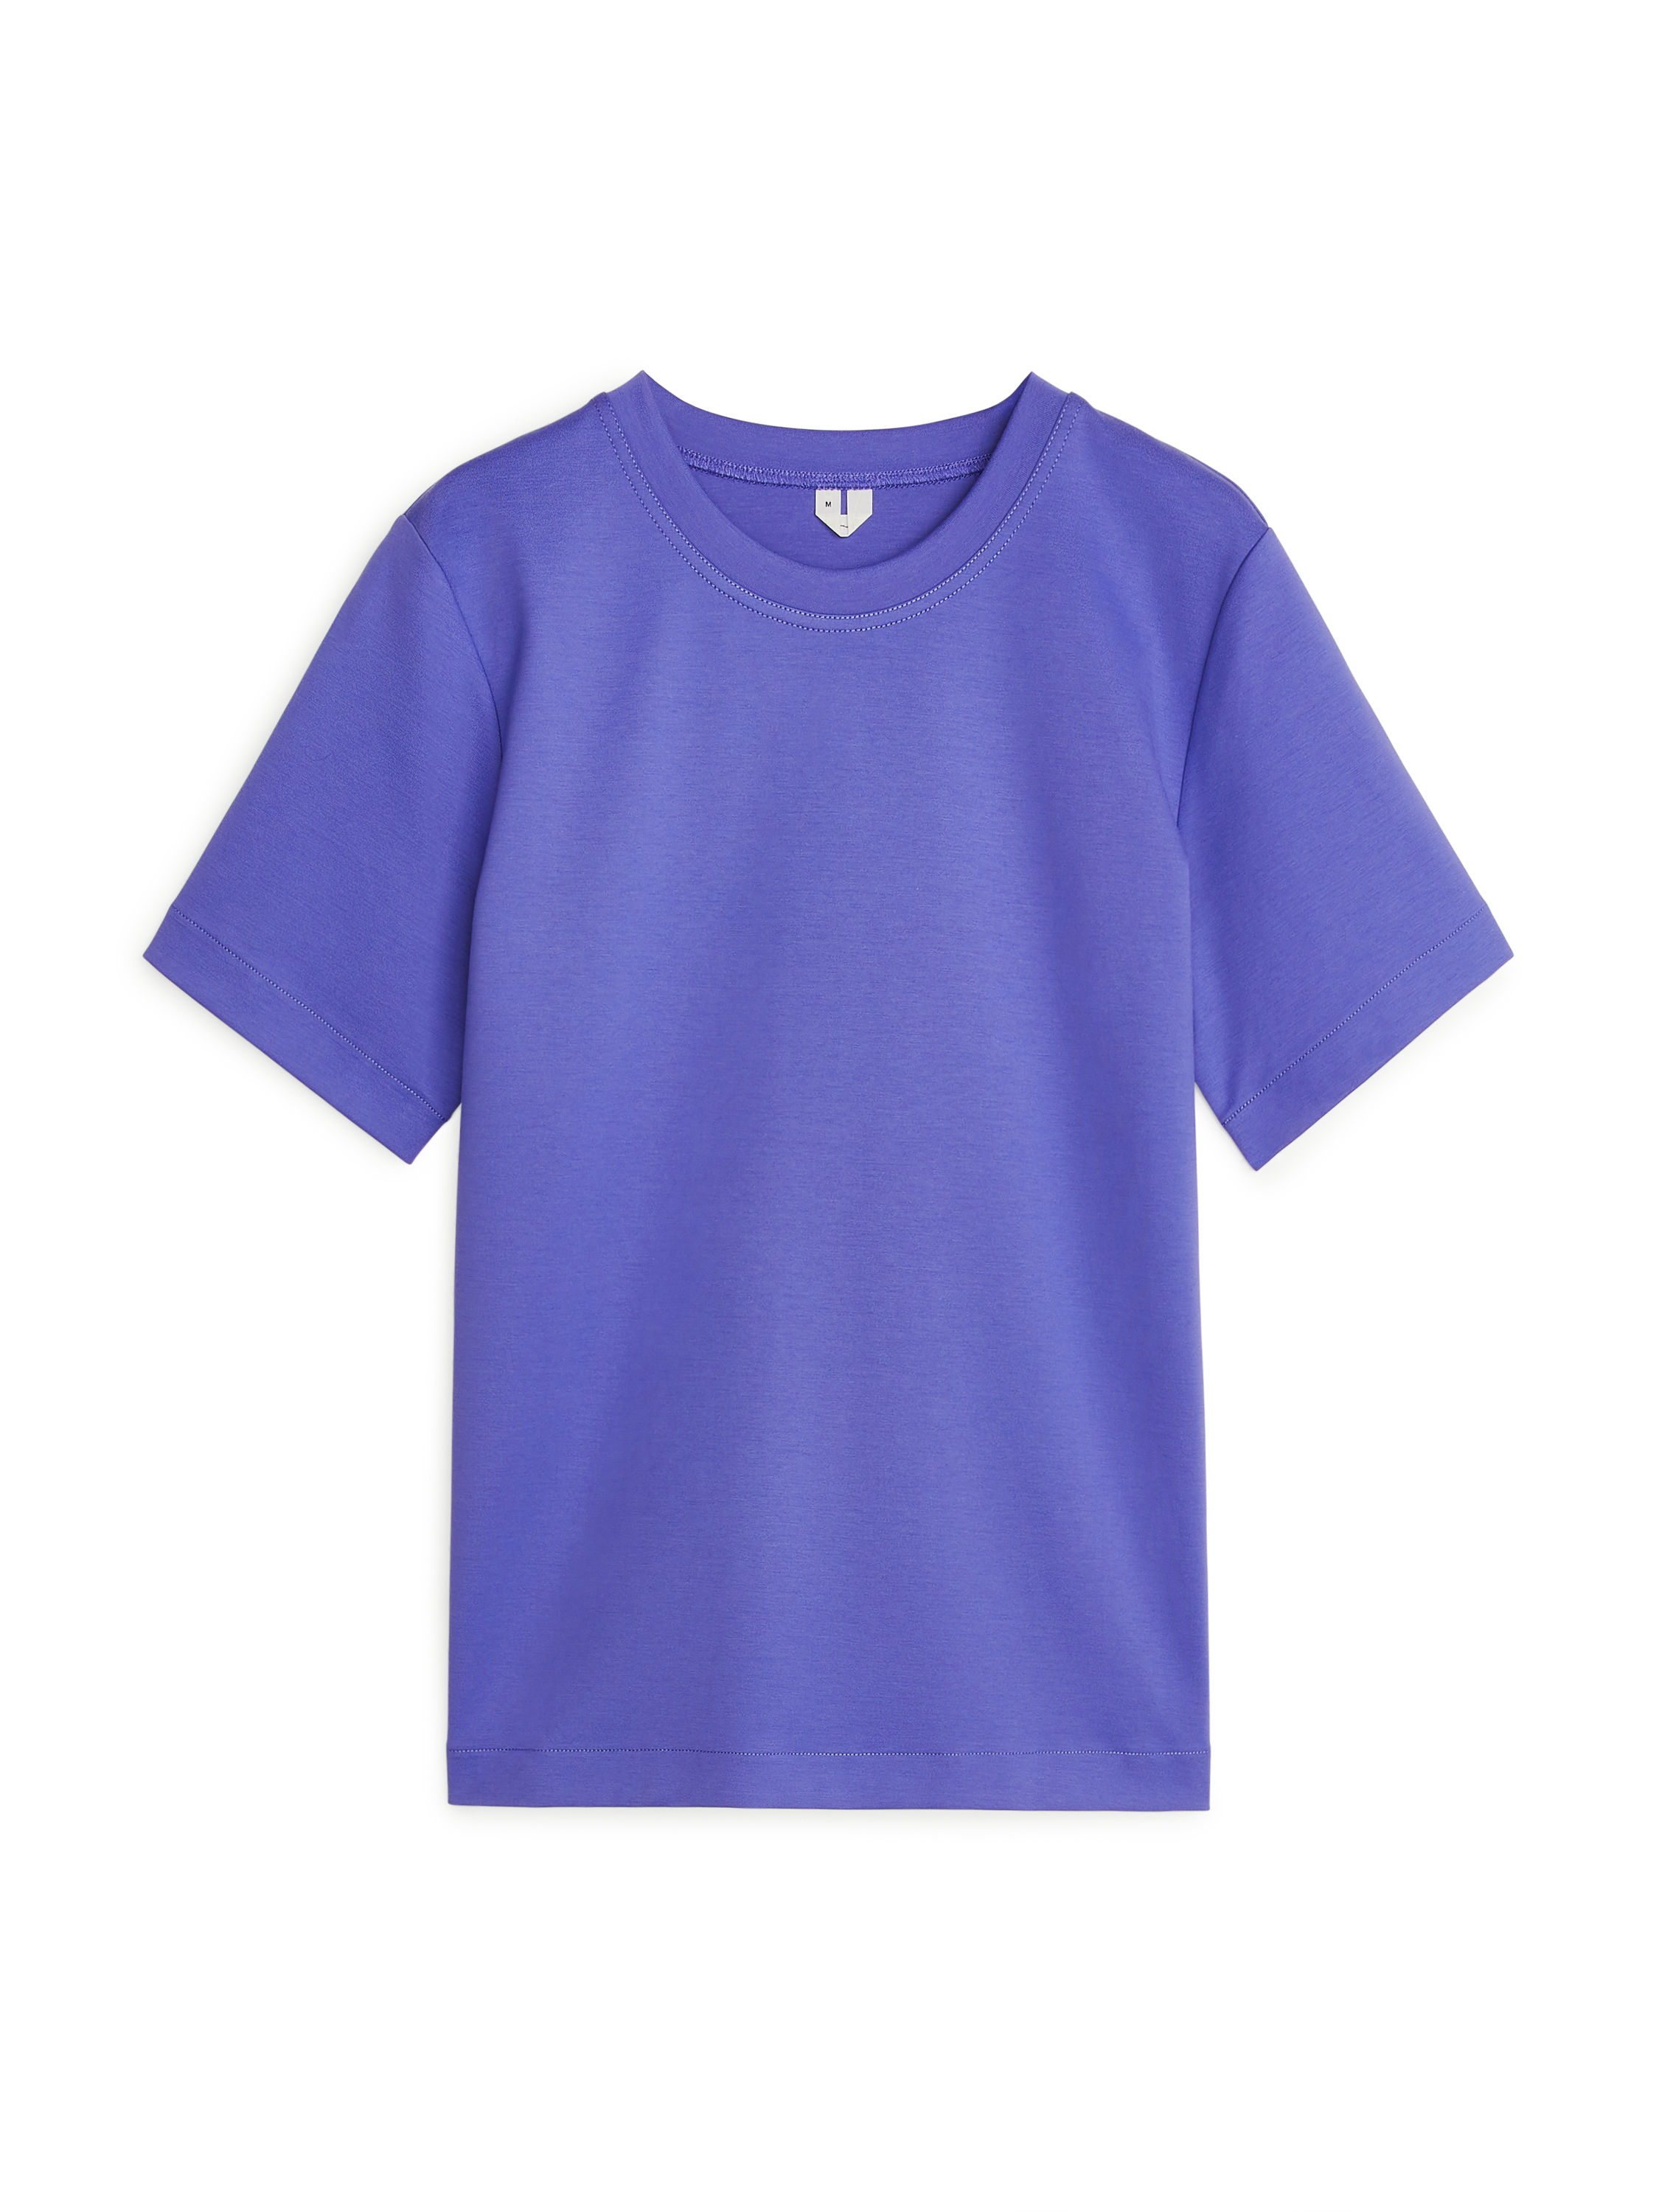 Fabric Swatch image of Arket heavy-weight t-shirt in blue